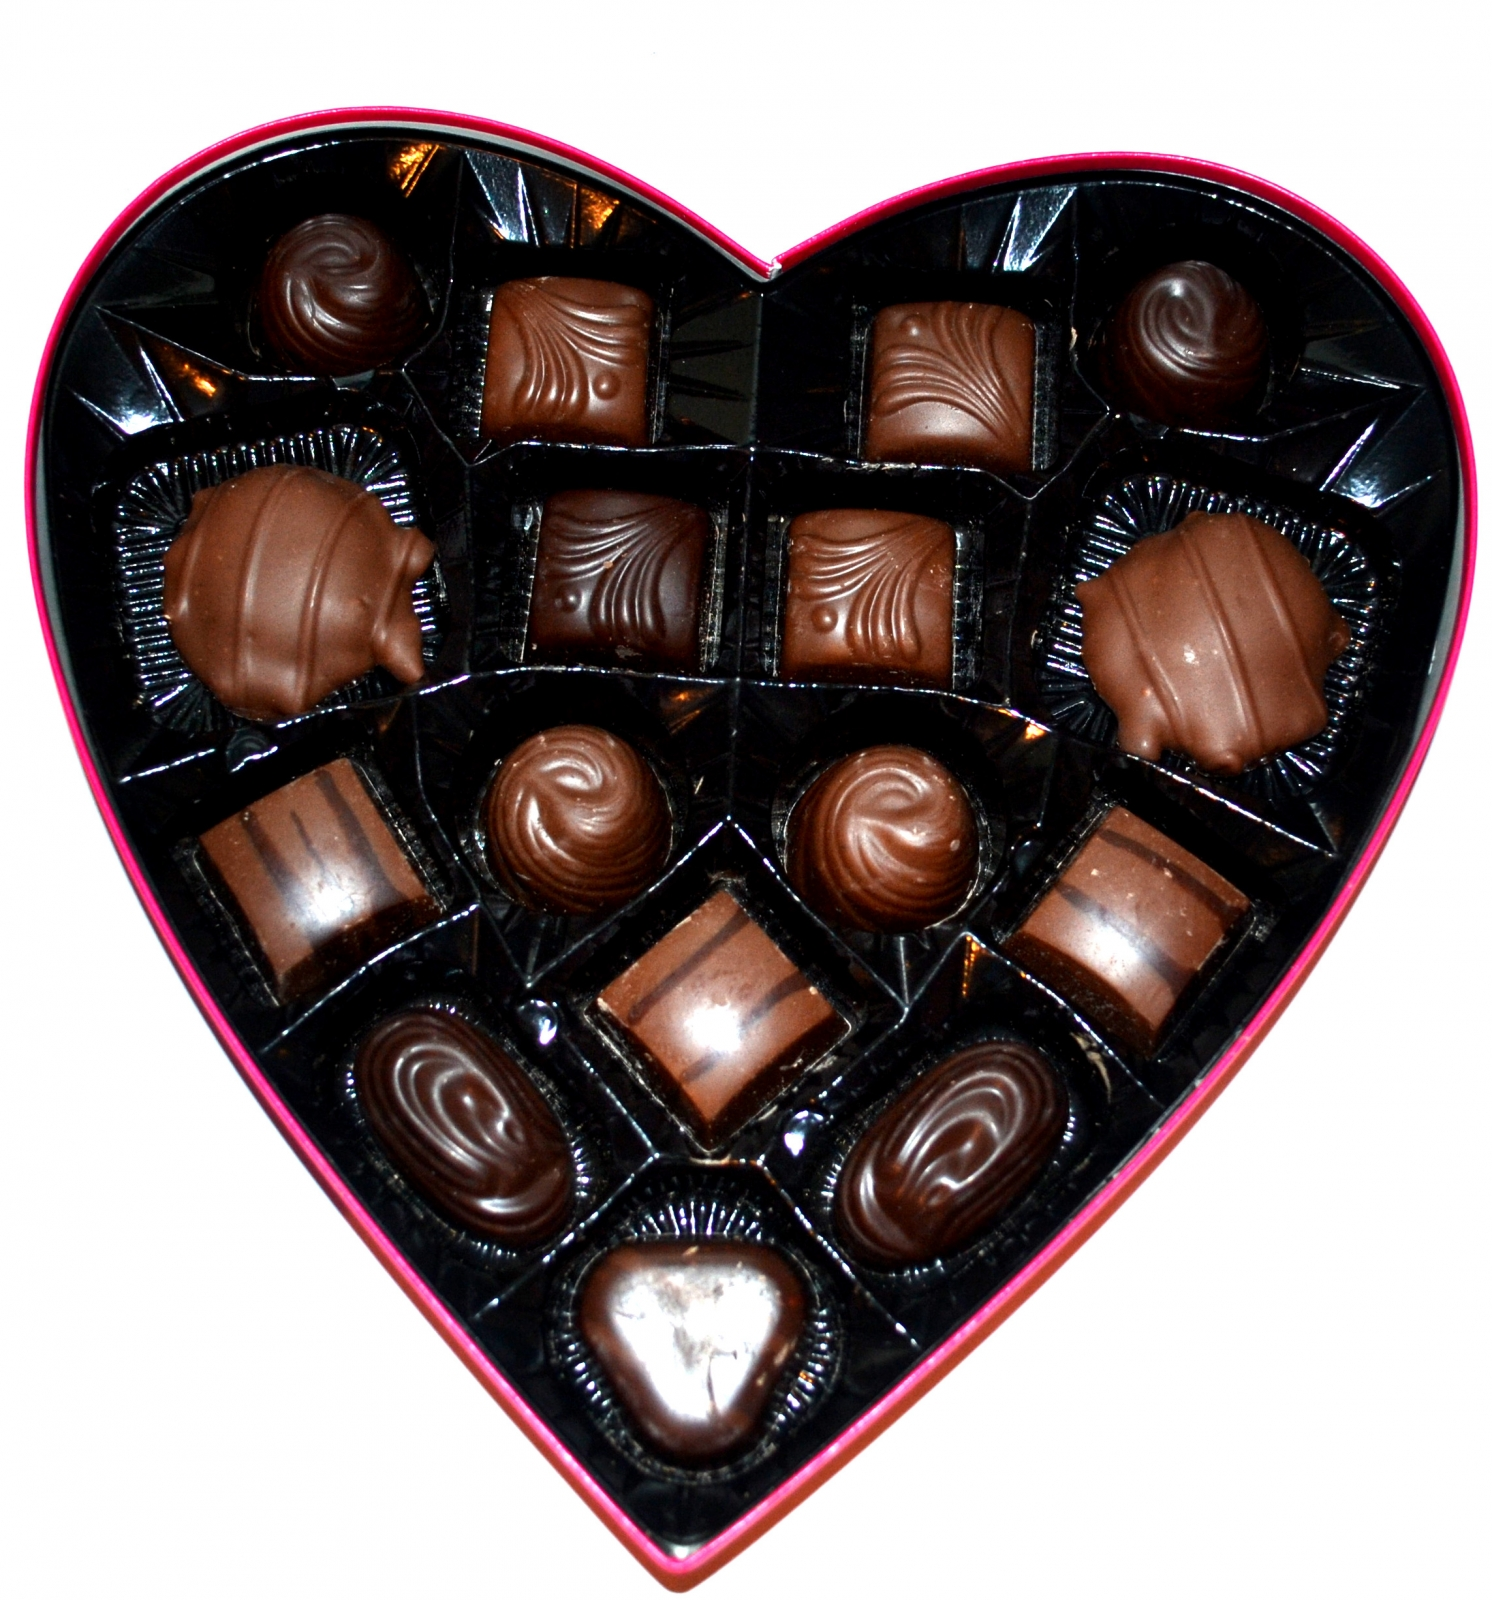 Valentine+day+chocolate+(7)